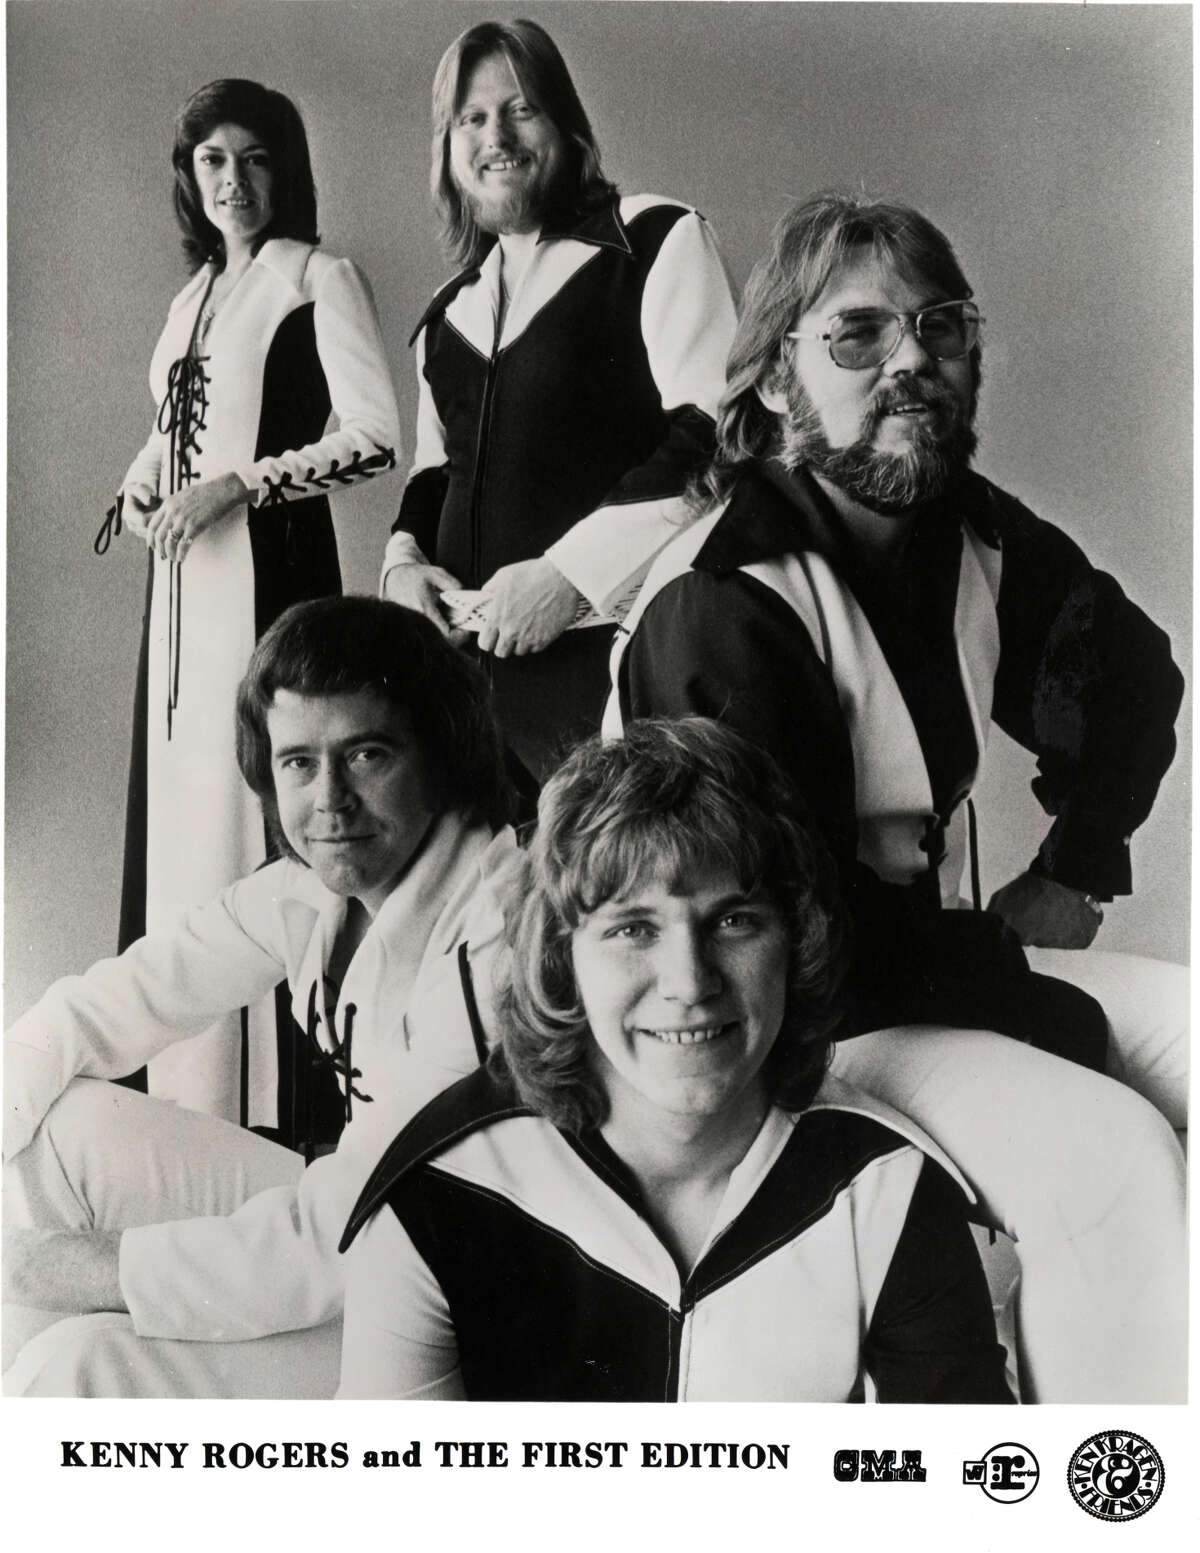 Folk-rock group Kenny Rogers and the First Edition featured, clockwise from top left, Thelma Camacho, Mickey Jones, Kenny Rogers, Terry Williams and Mike Settle.